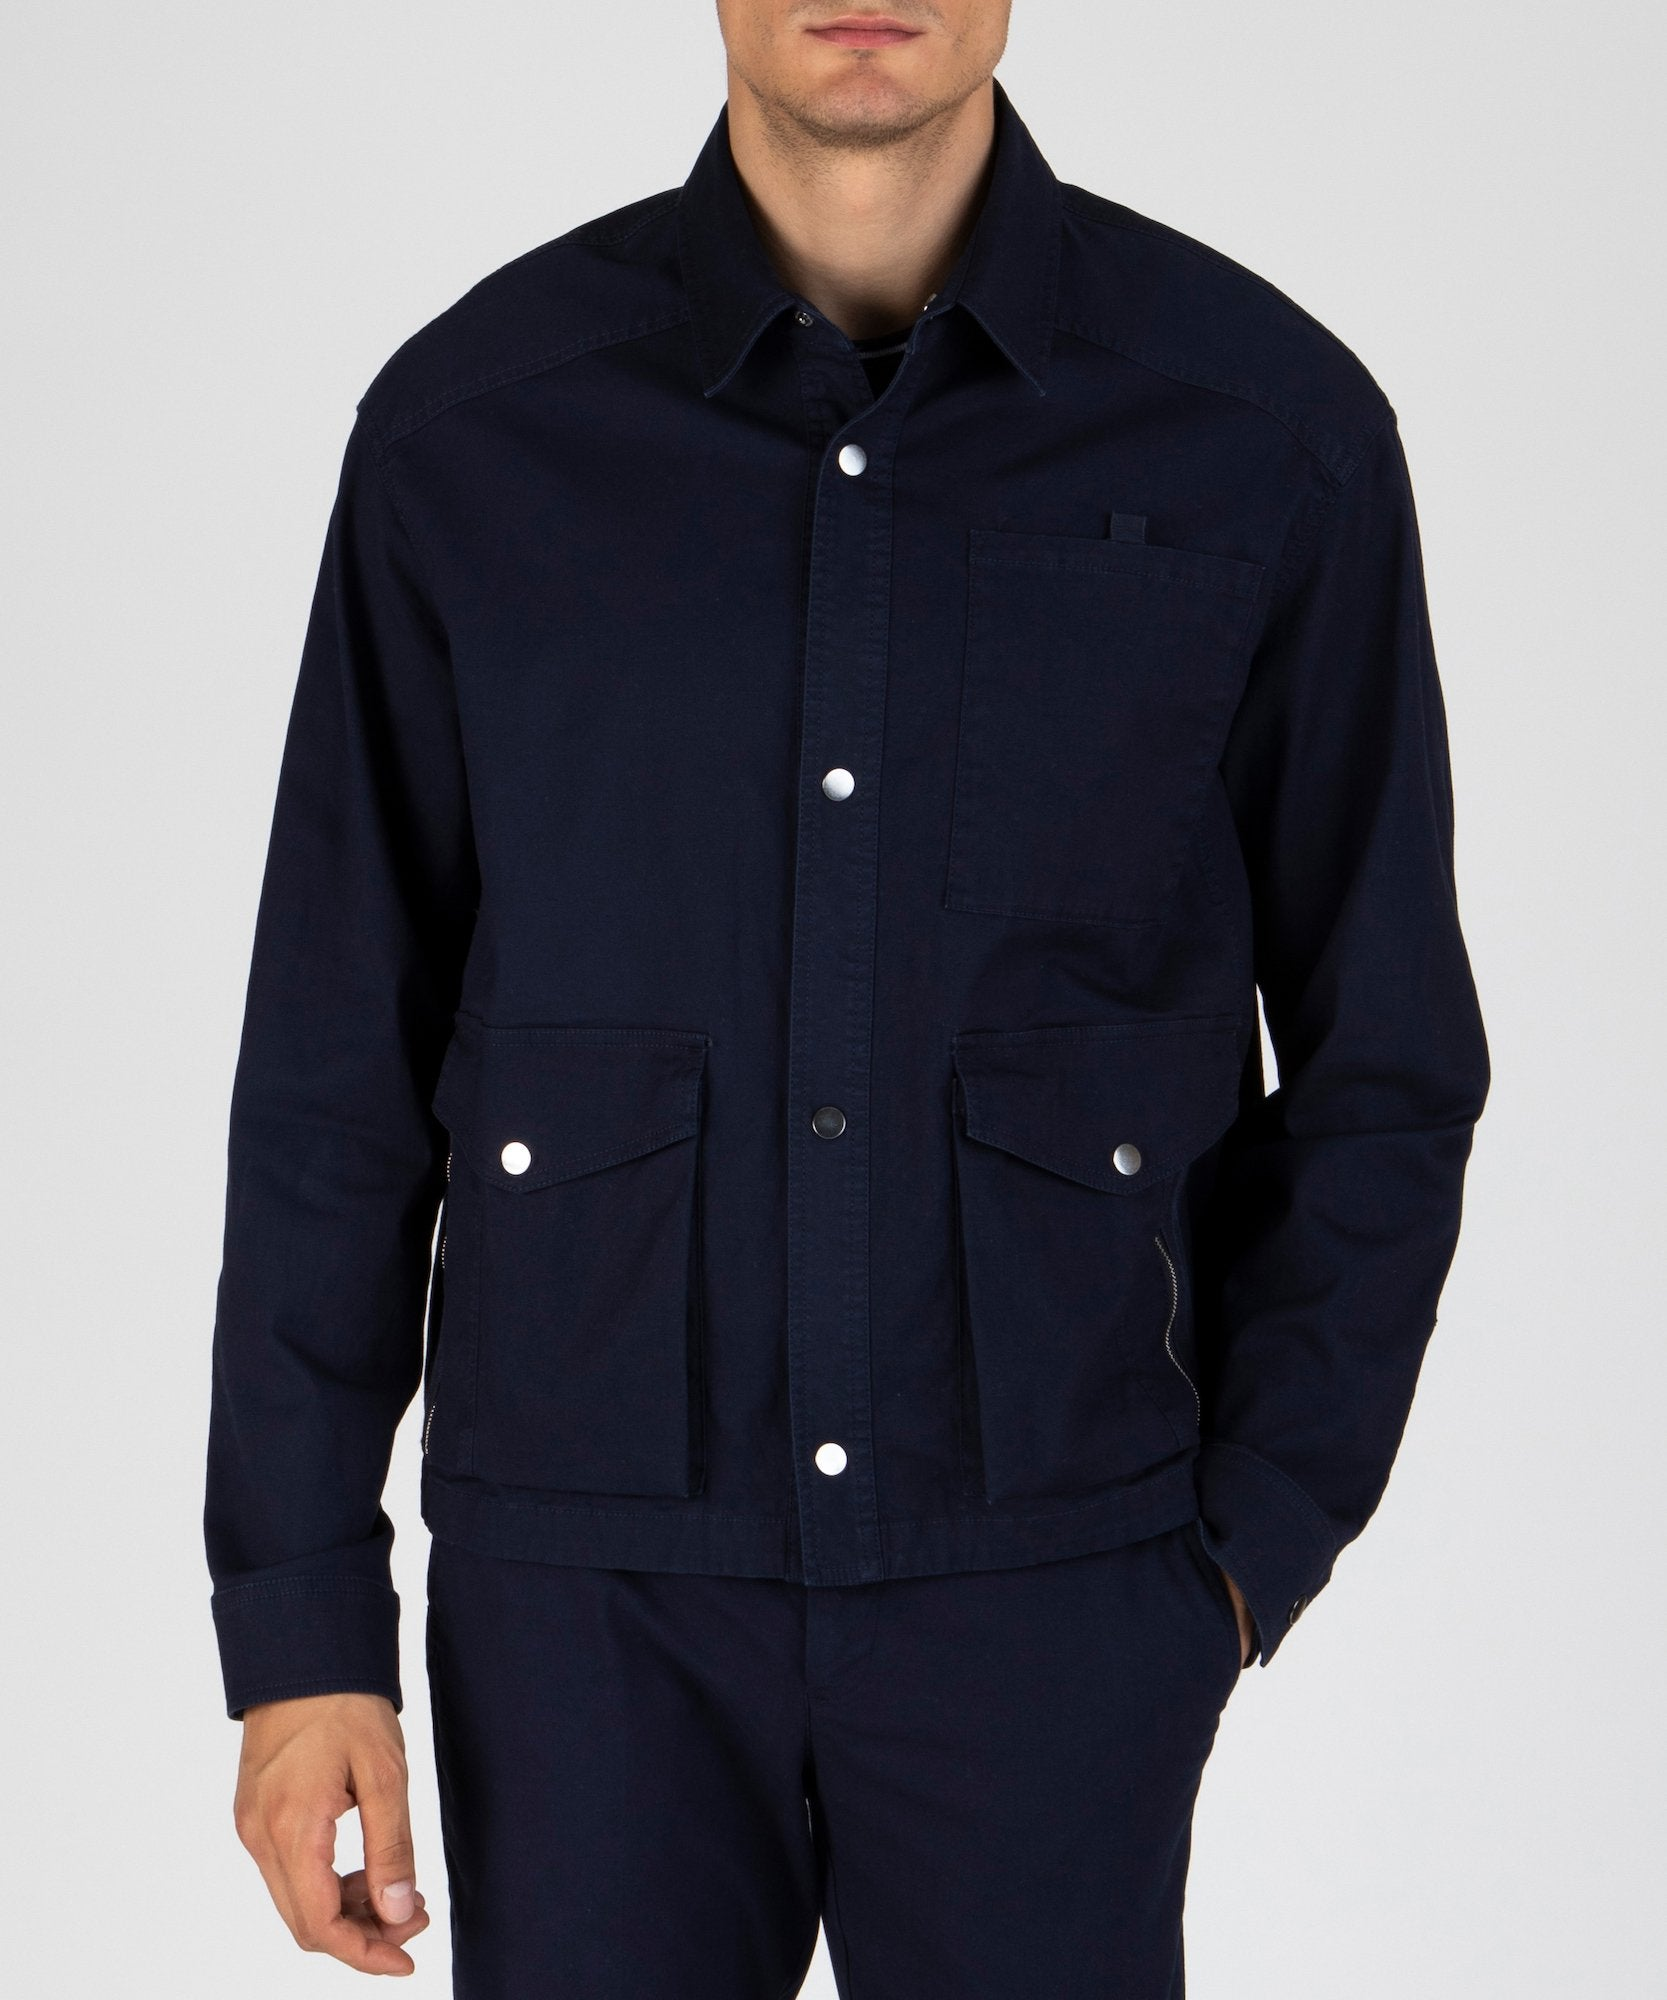 Midnight Stretch Cotton Utility Jacket - Men's Luxe Jacket by ATM Anthony Thomas Melillo